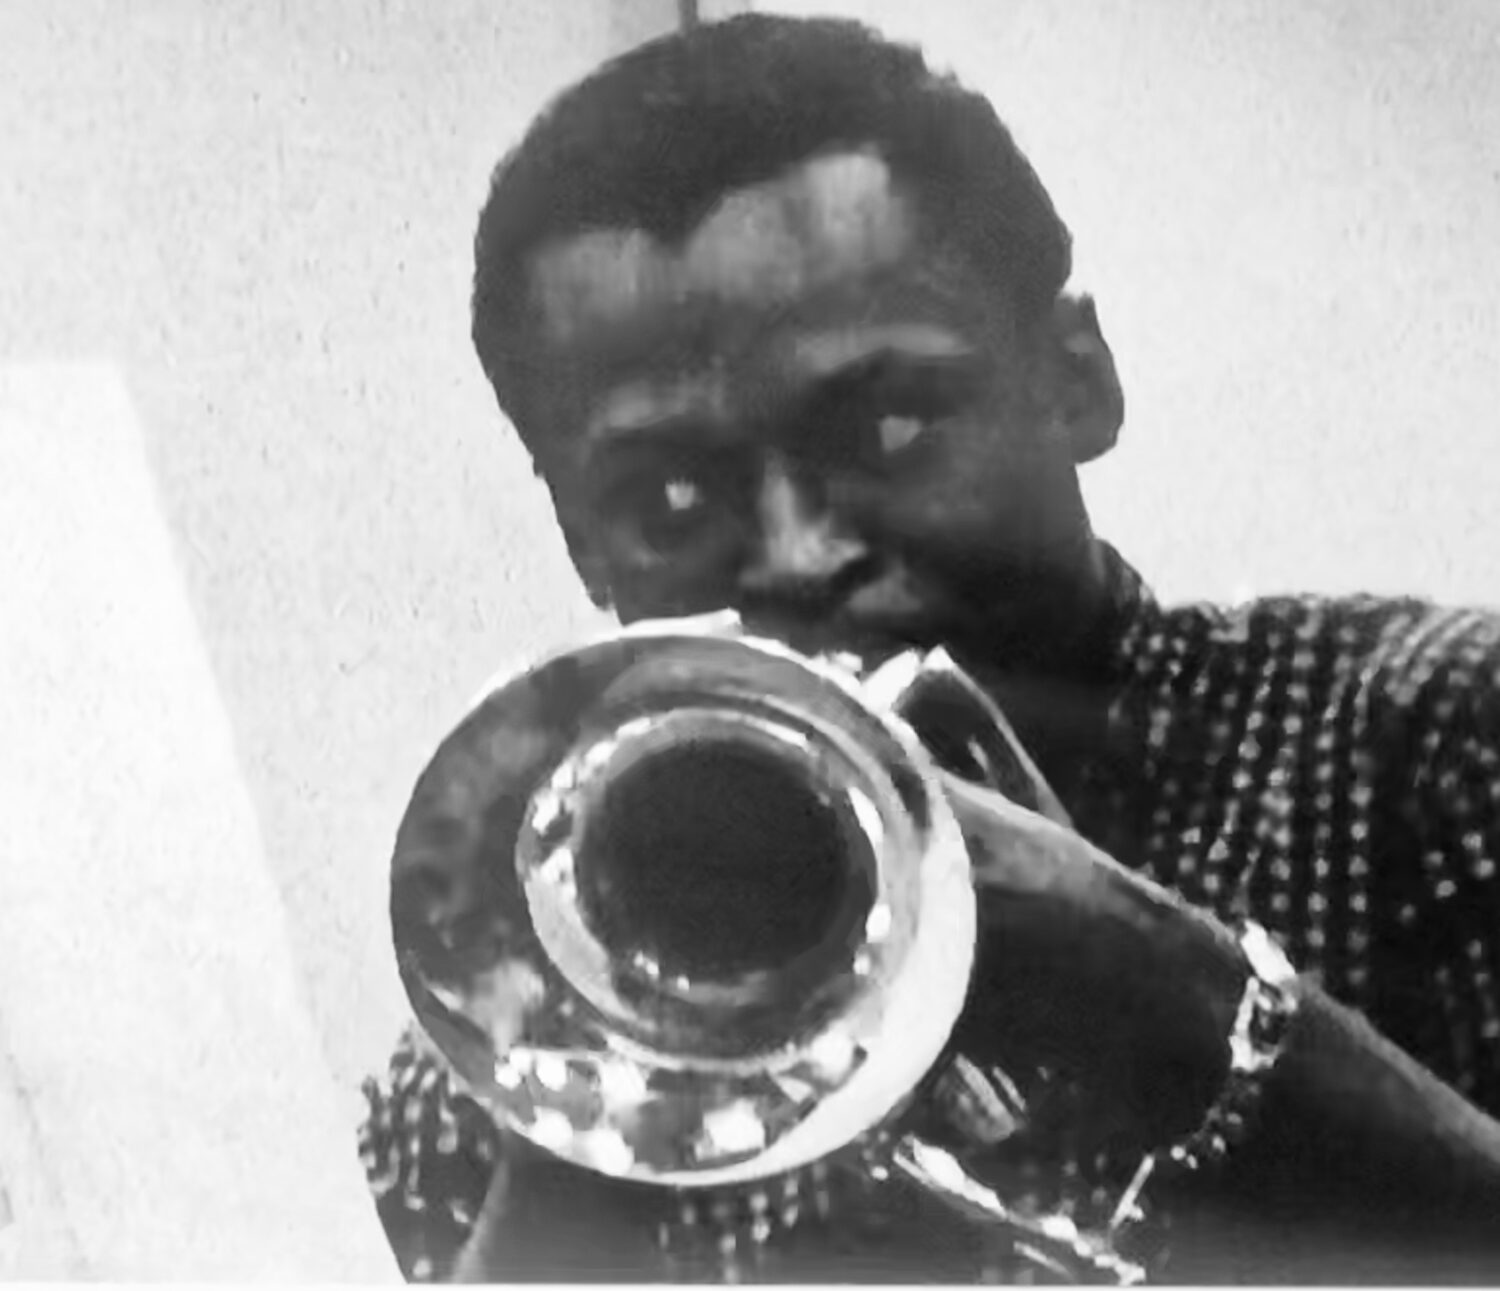 marvelous Miles Davis get way cool